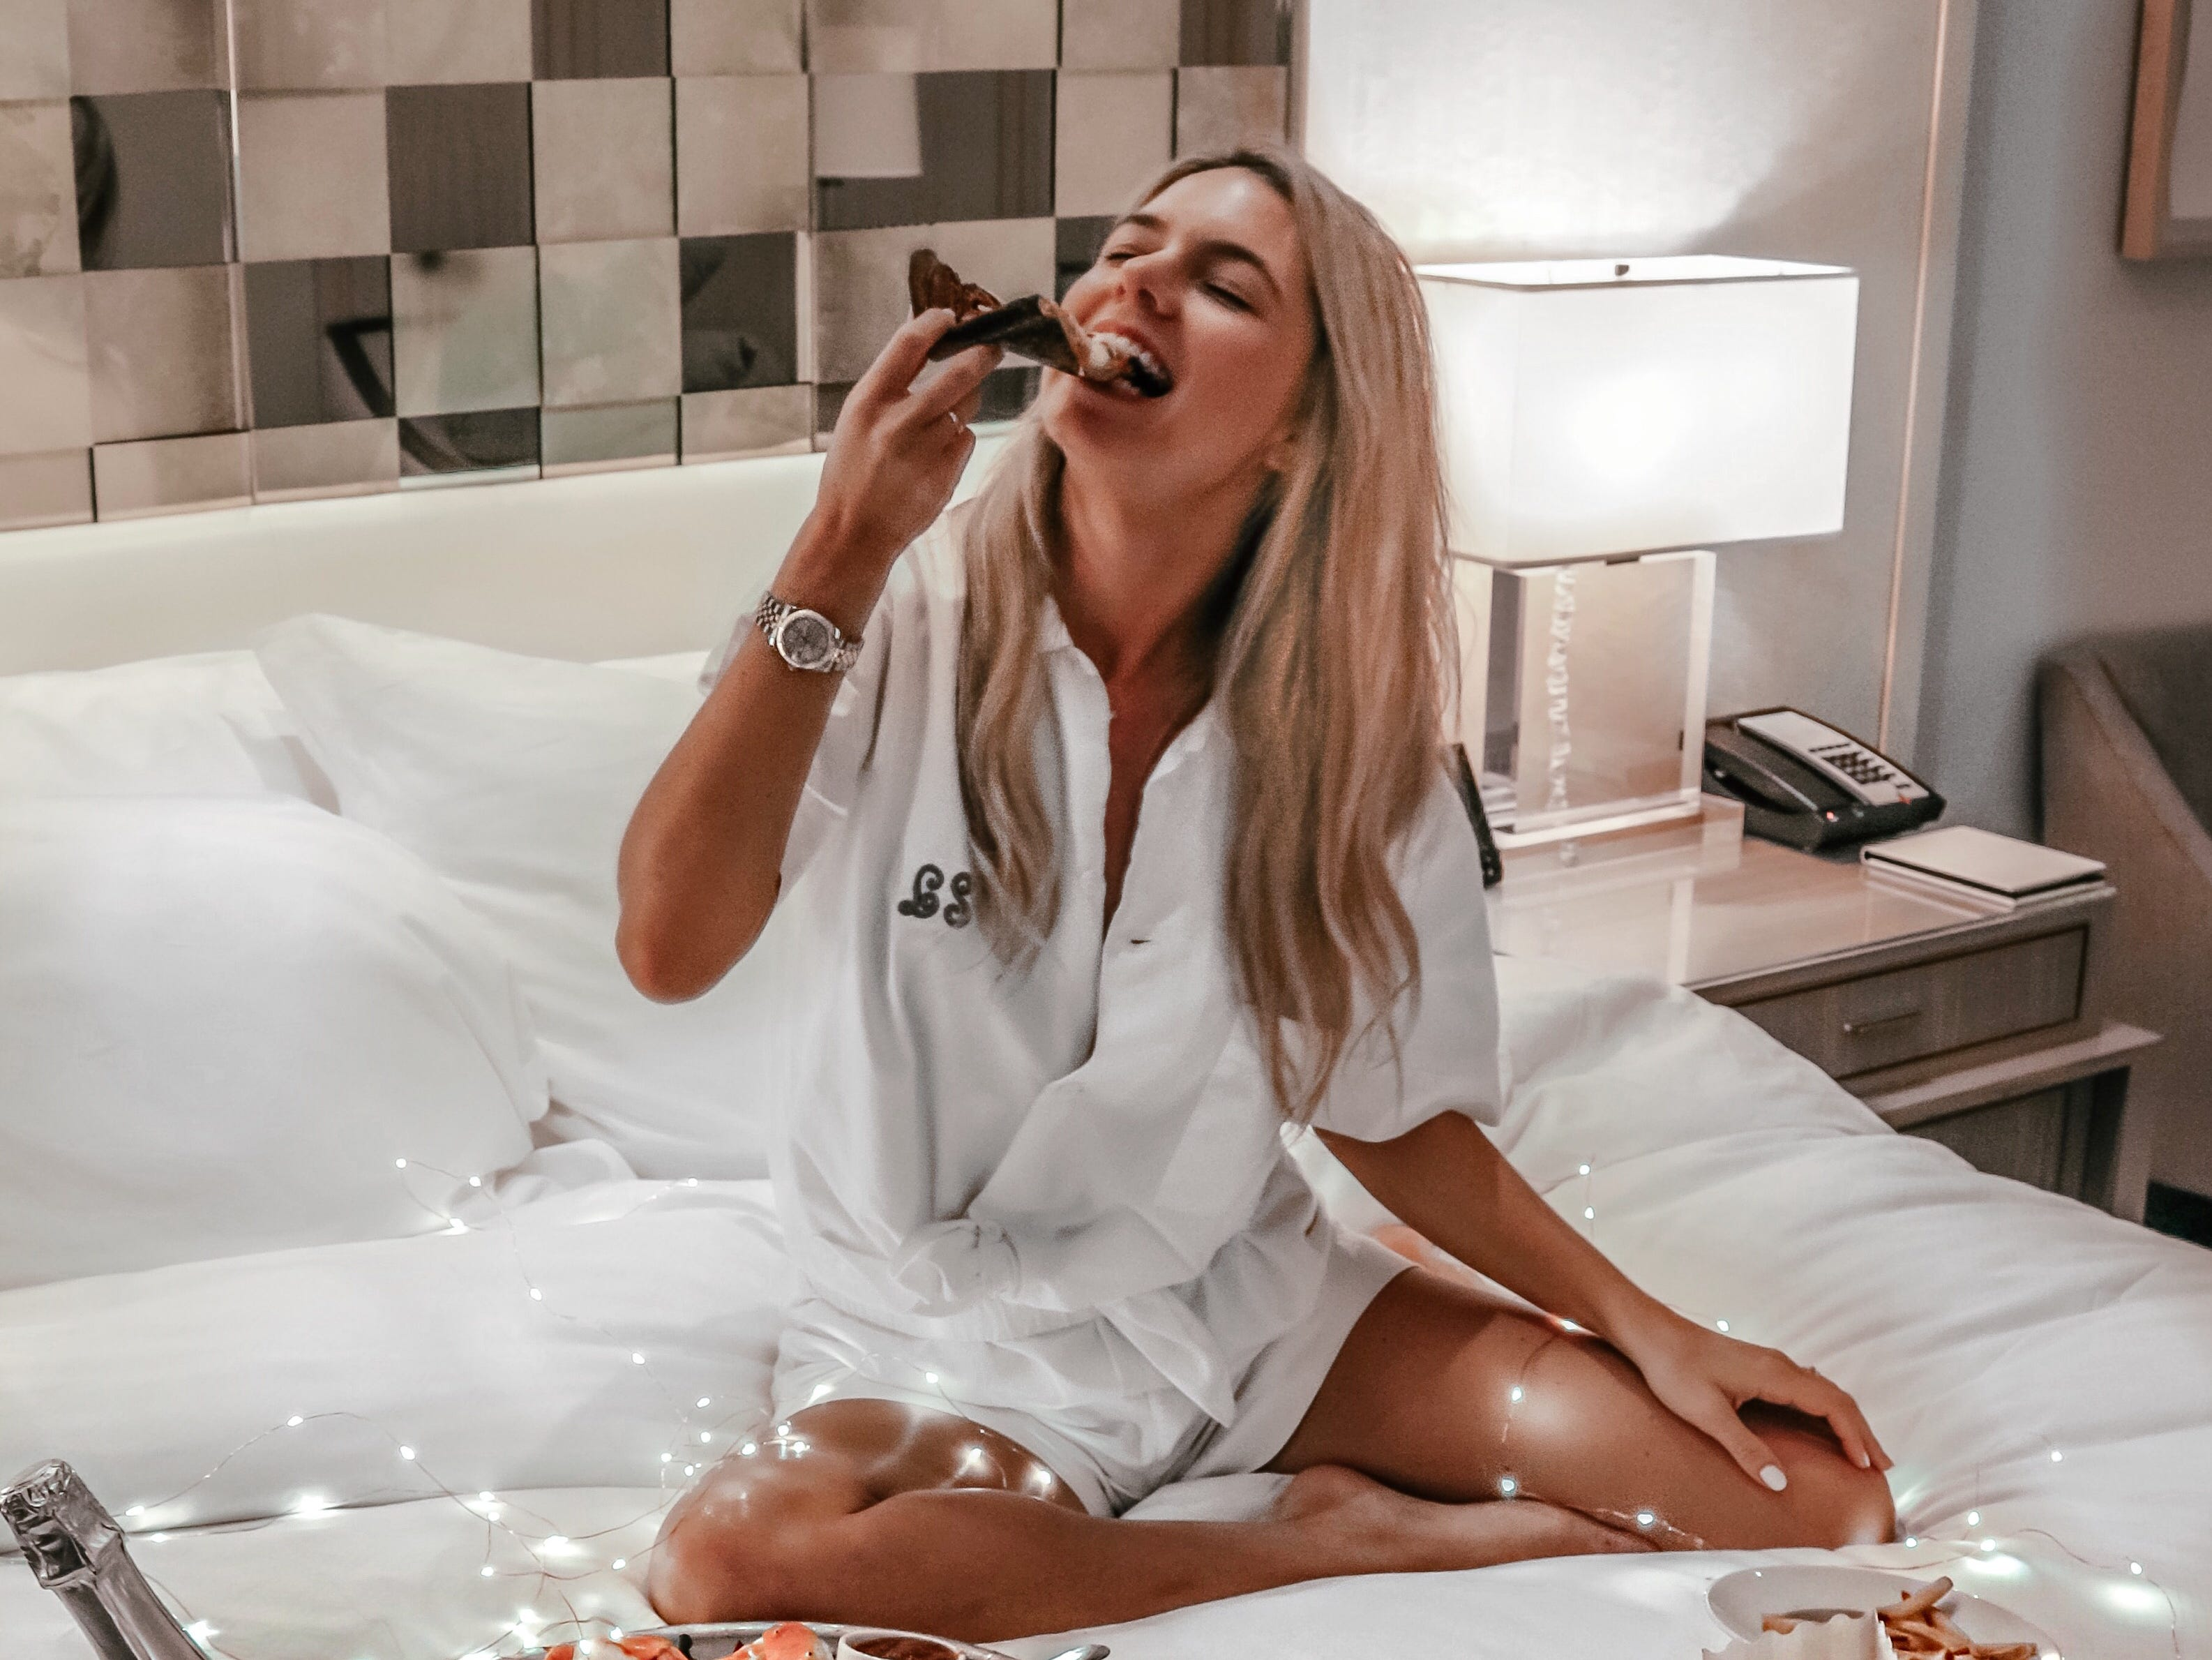 Influencer Lindsay Silberman at the St. Regis Bal Harbour Resort, a company she has partnered with as part of her luxury lifestyle blog.